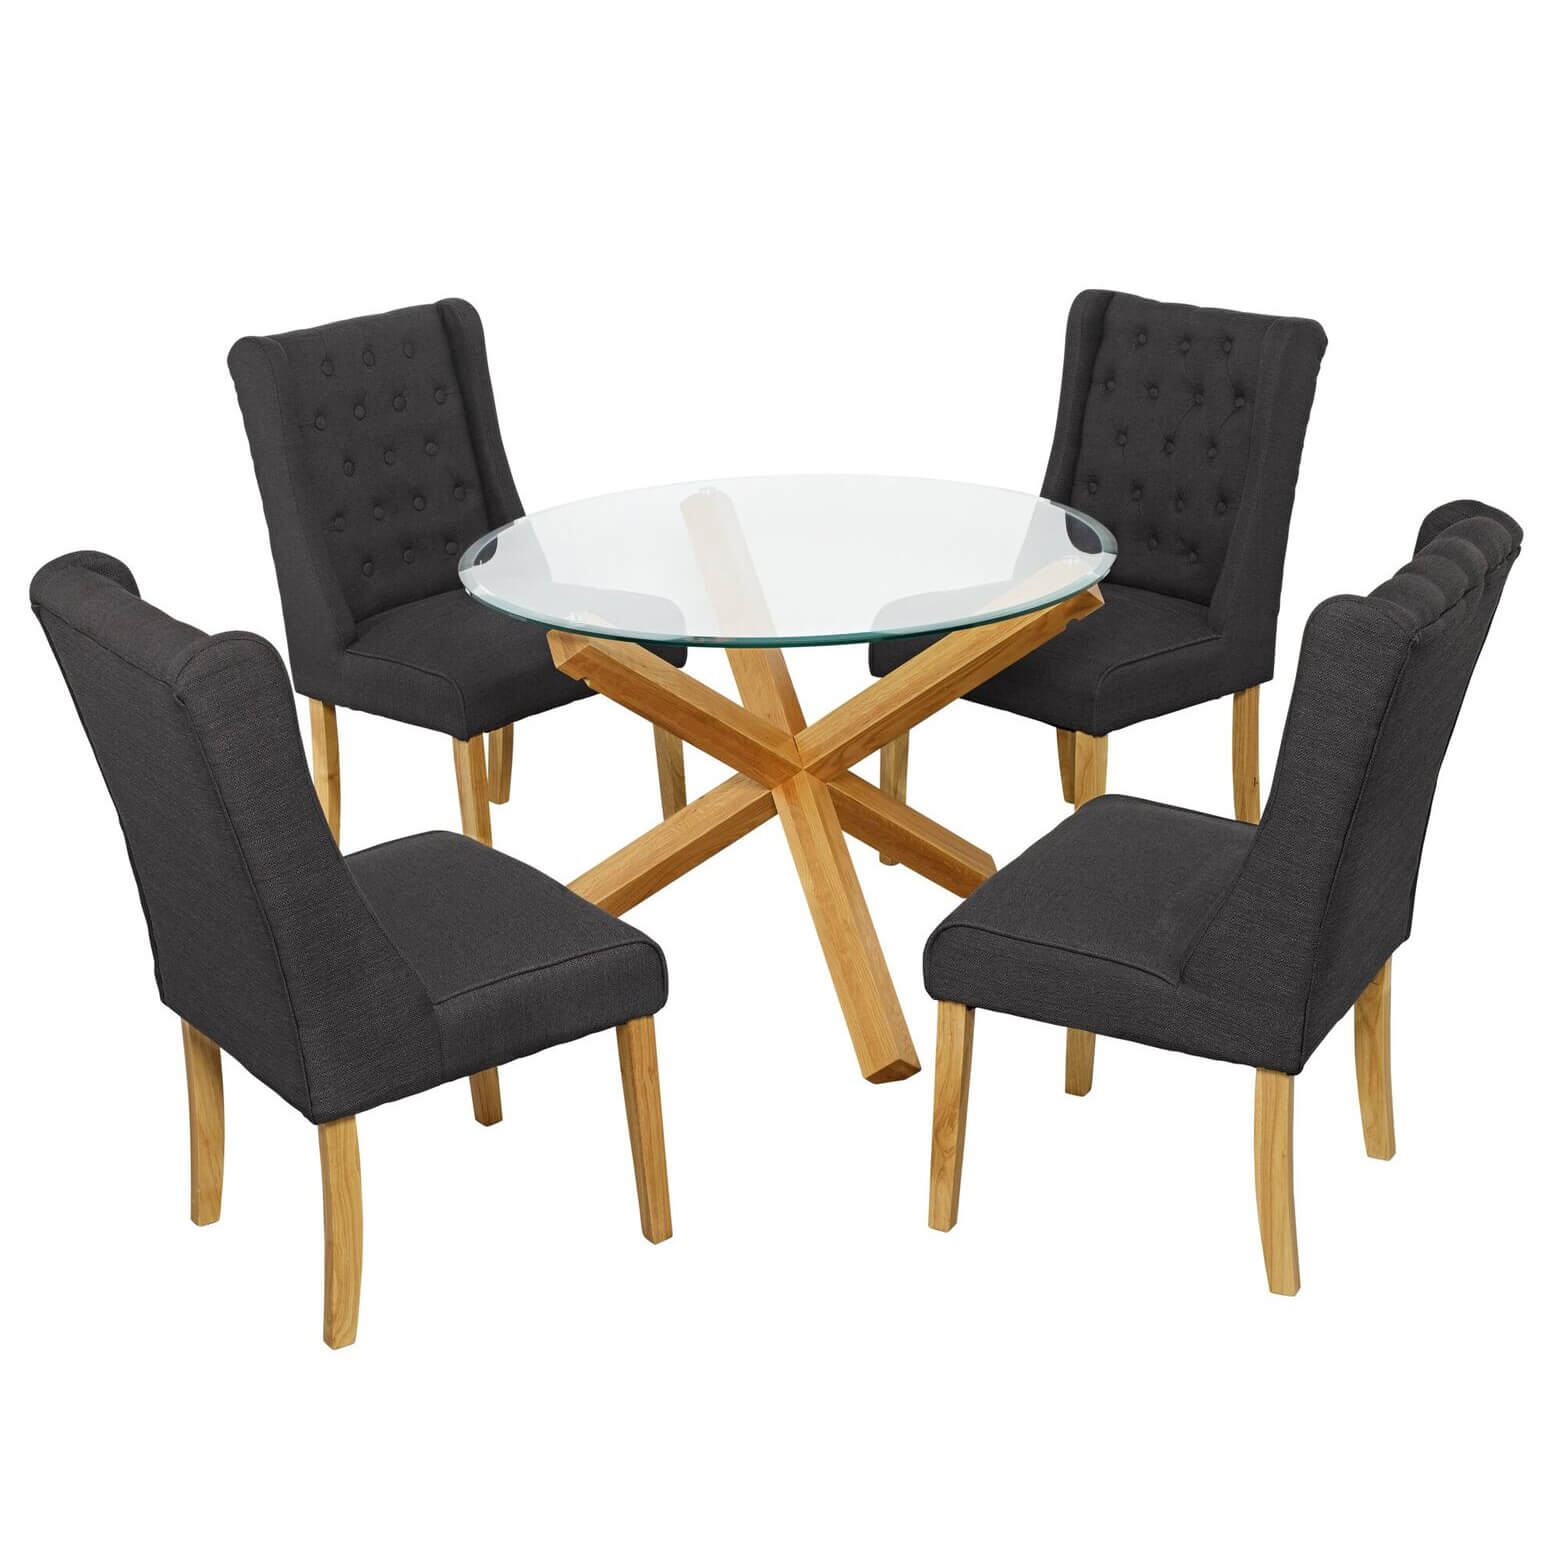 Grange glass and oak dining table with four grey verona chairs